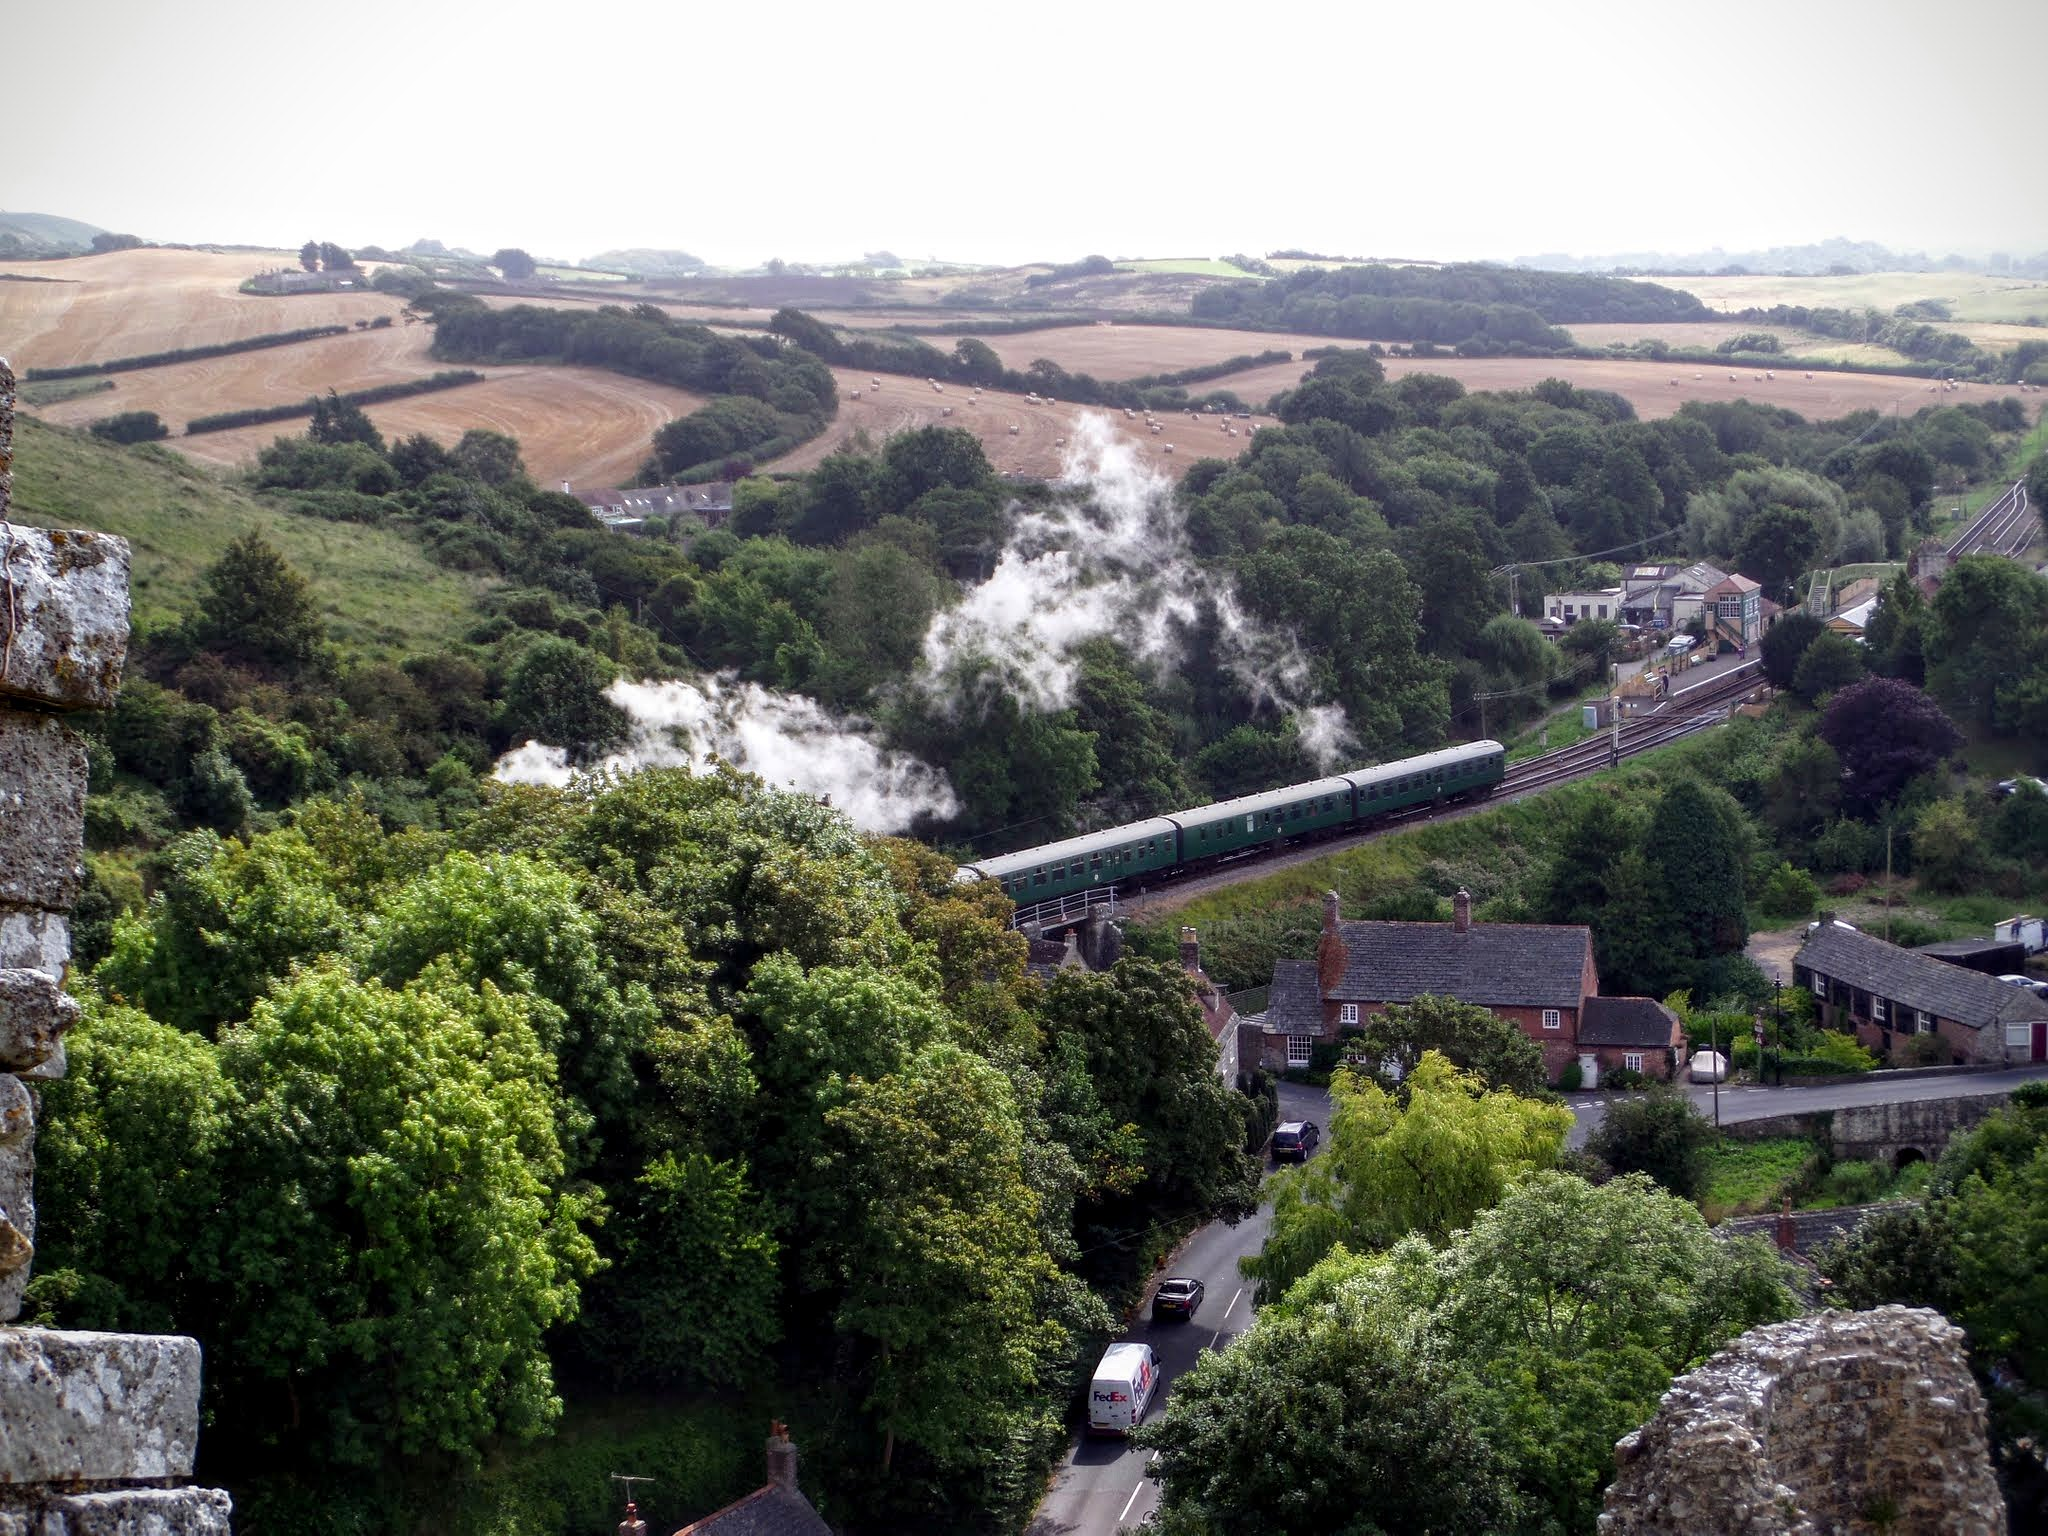 A heritage steam train from Swanage passing through Corfe Castle